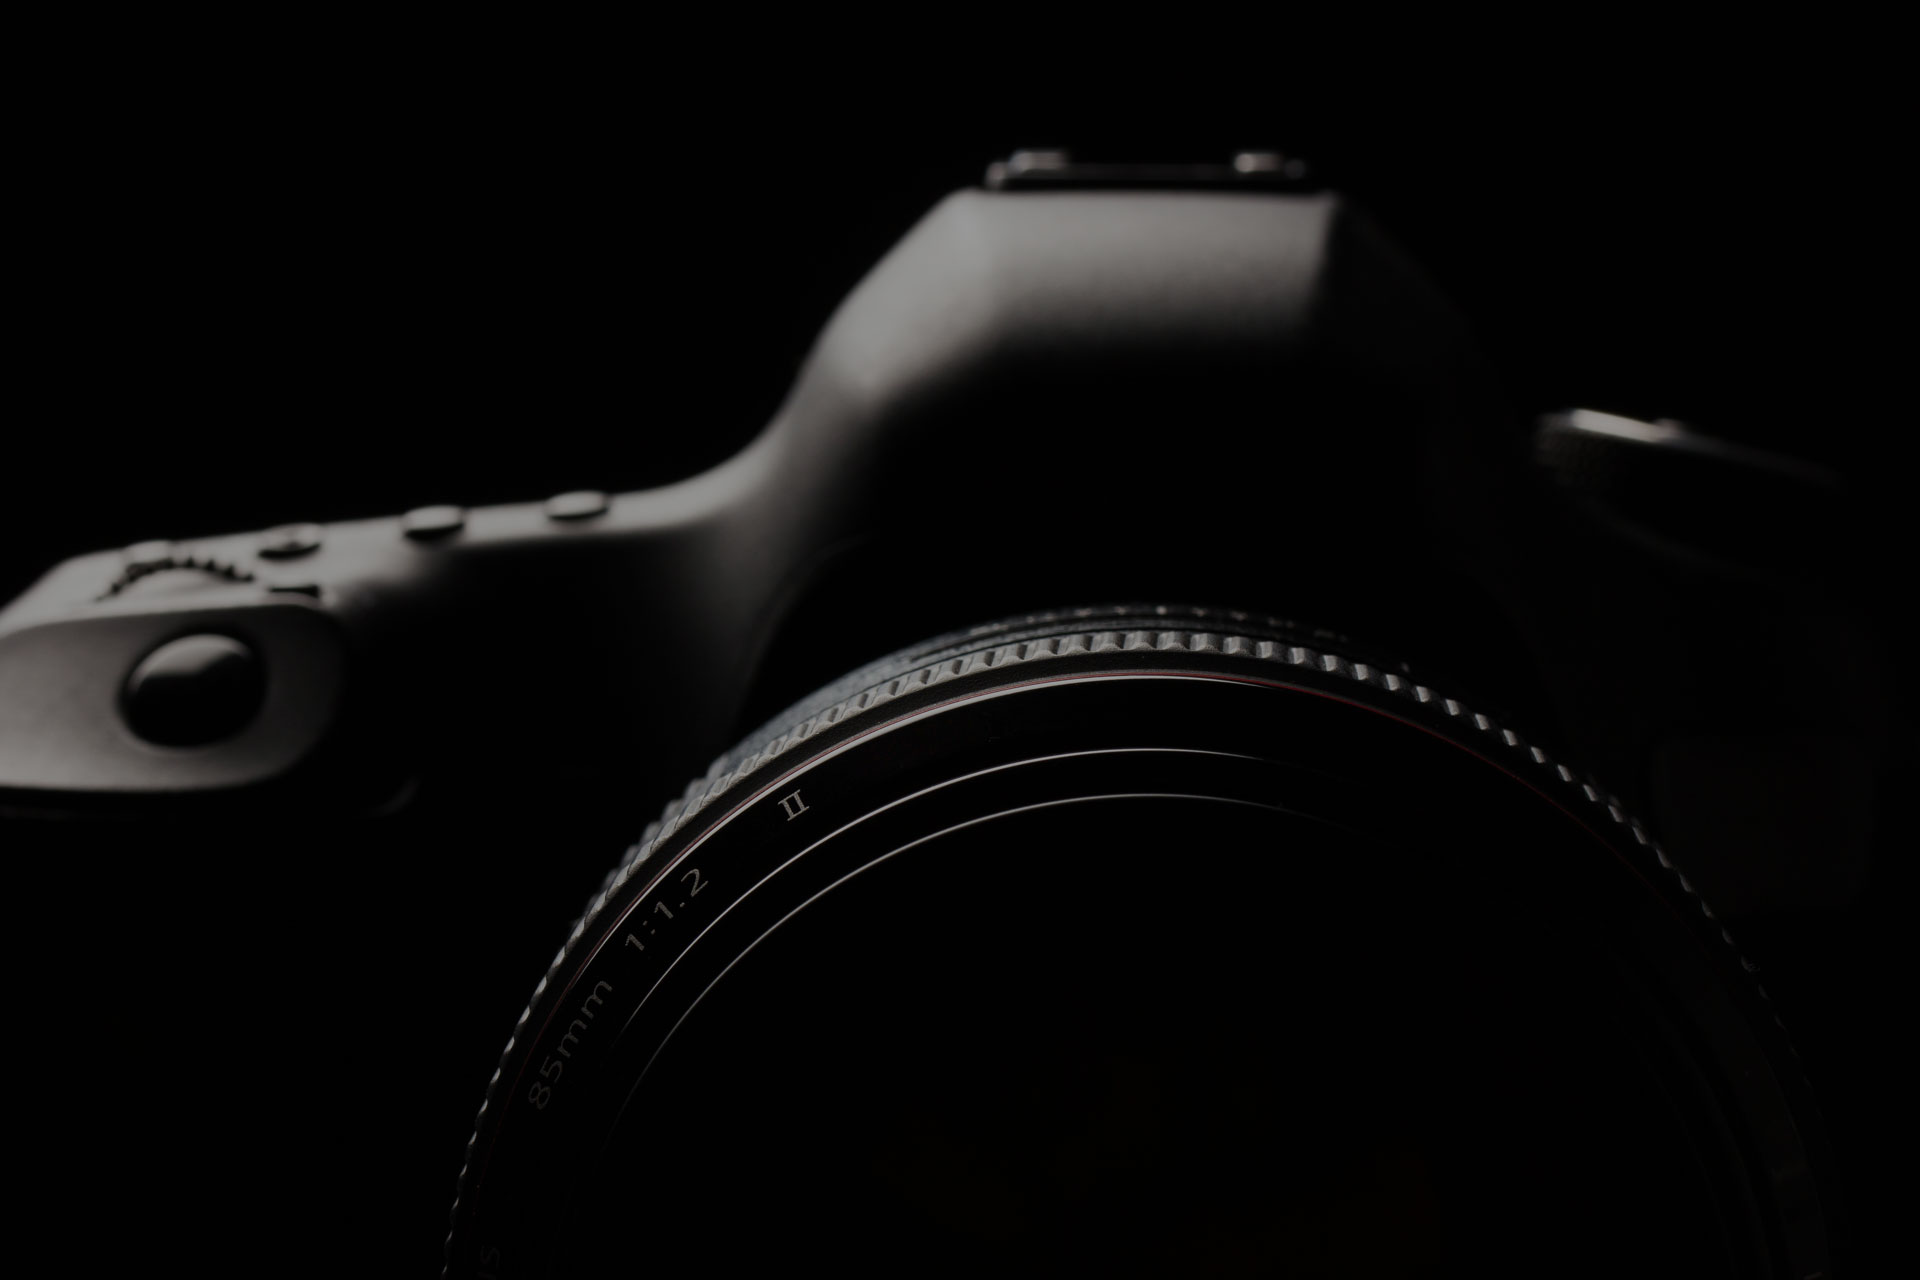 Modern DSLR camera with a very wide aperture lens on